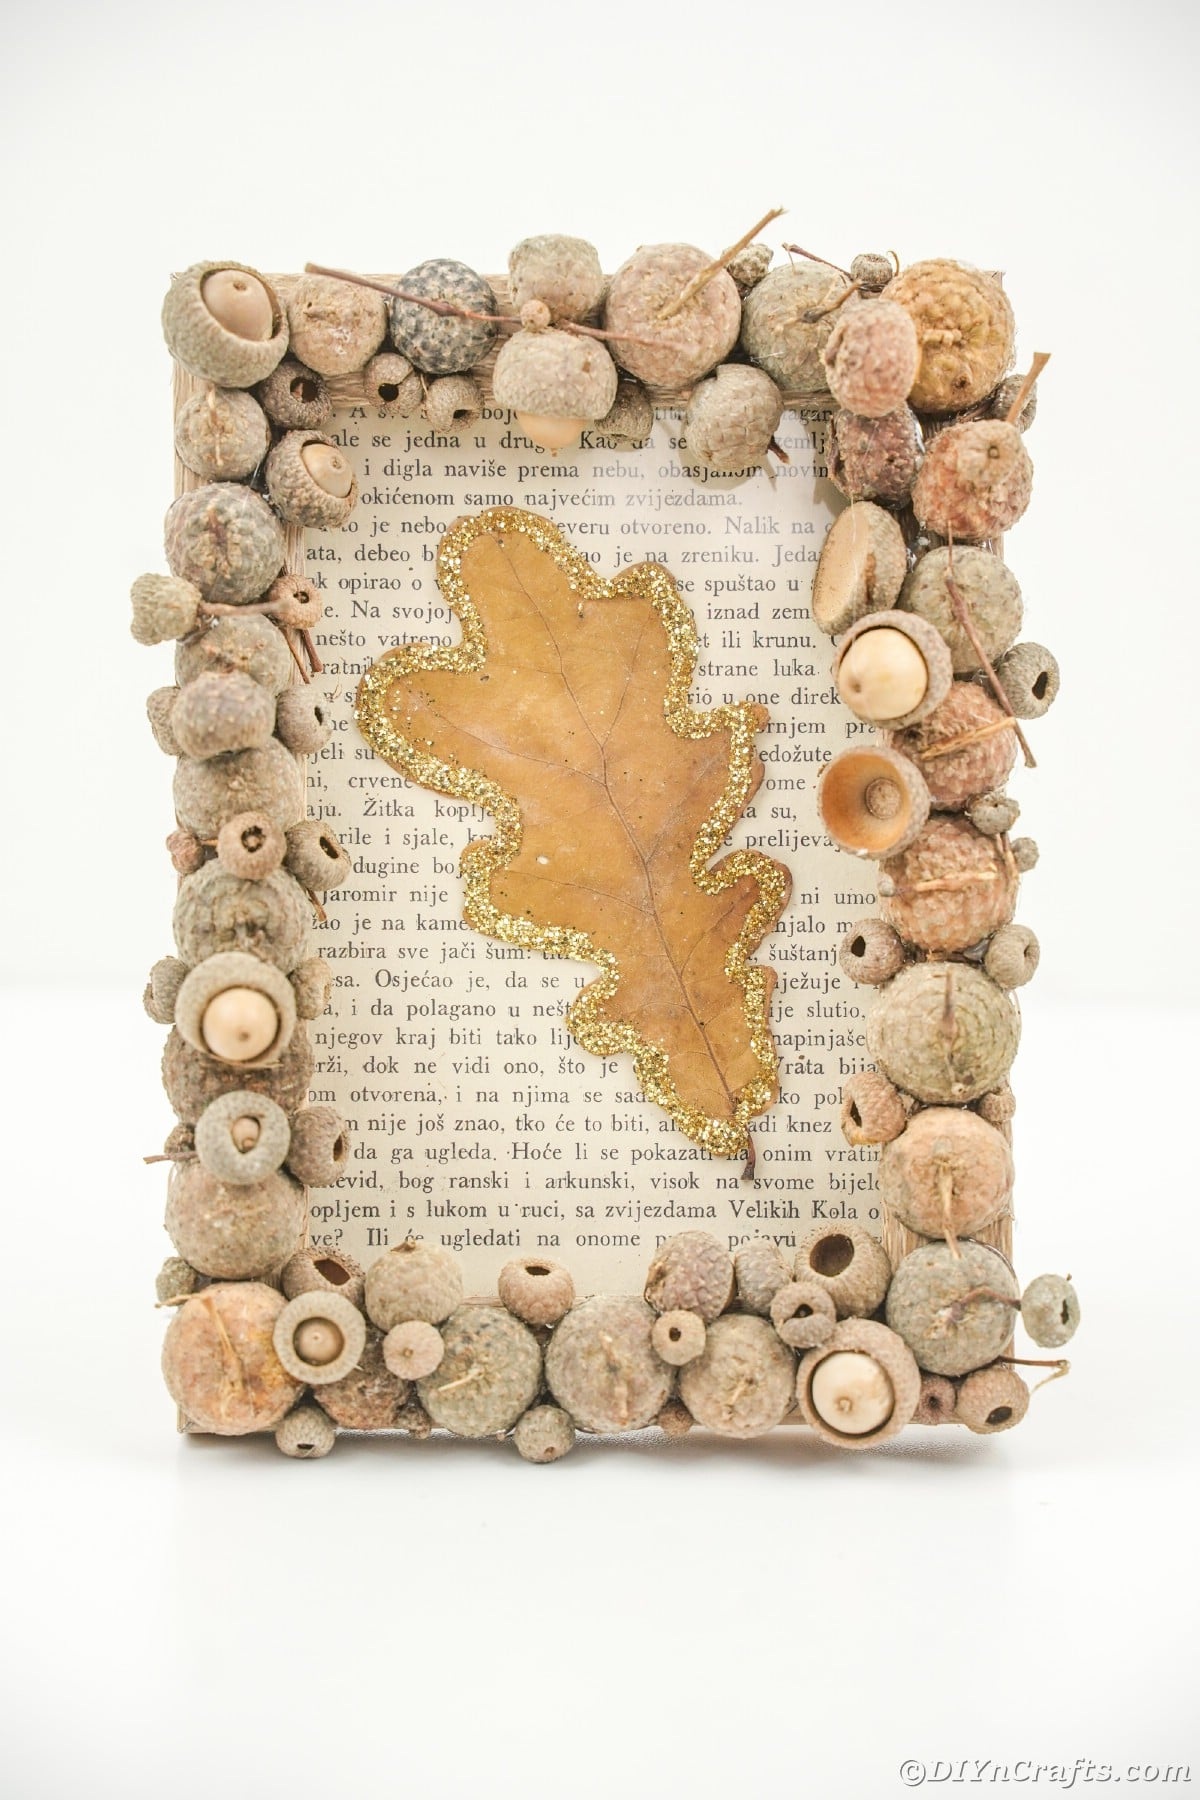 Acorn cap frame with book page and leaf inside